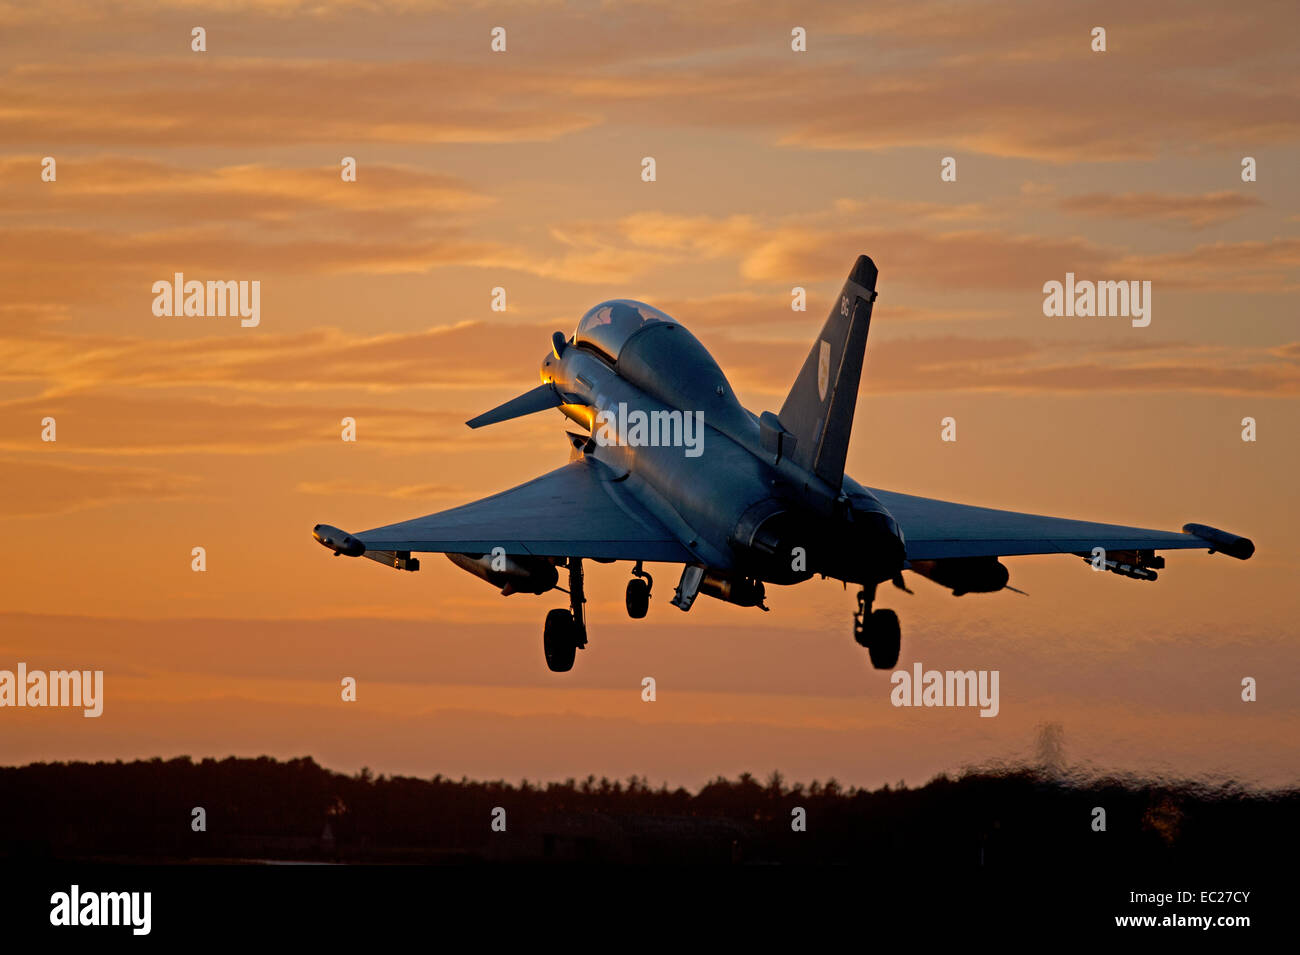 Eurofighter Typhoon returning to base at sundown after an afternoon mission.  SCO 9299. - Stock Image